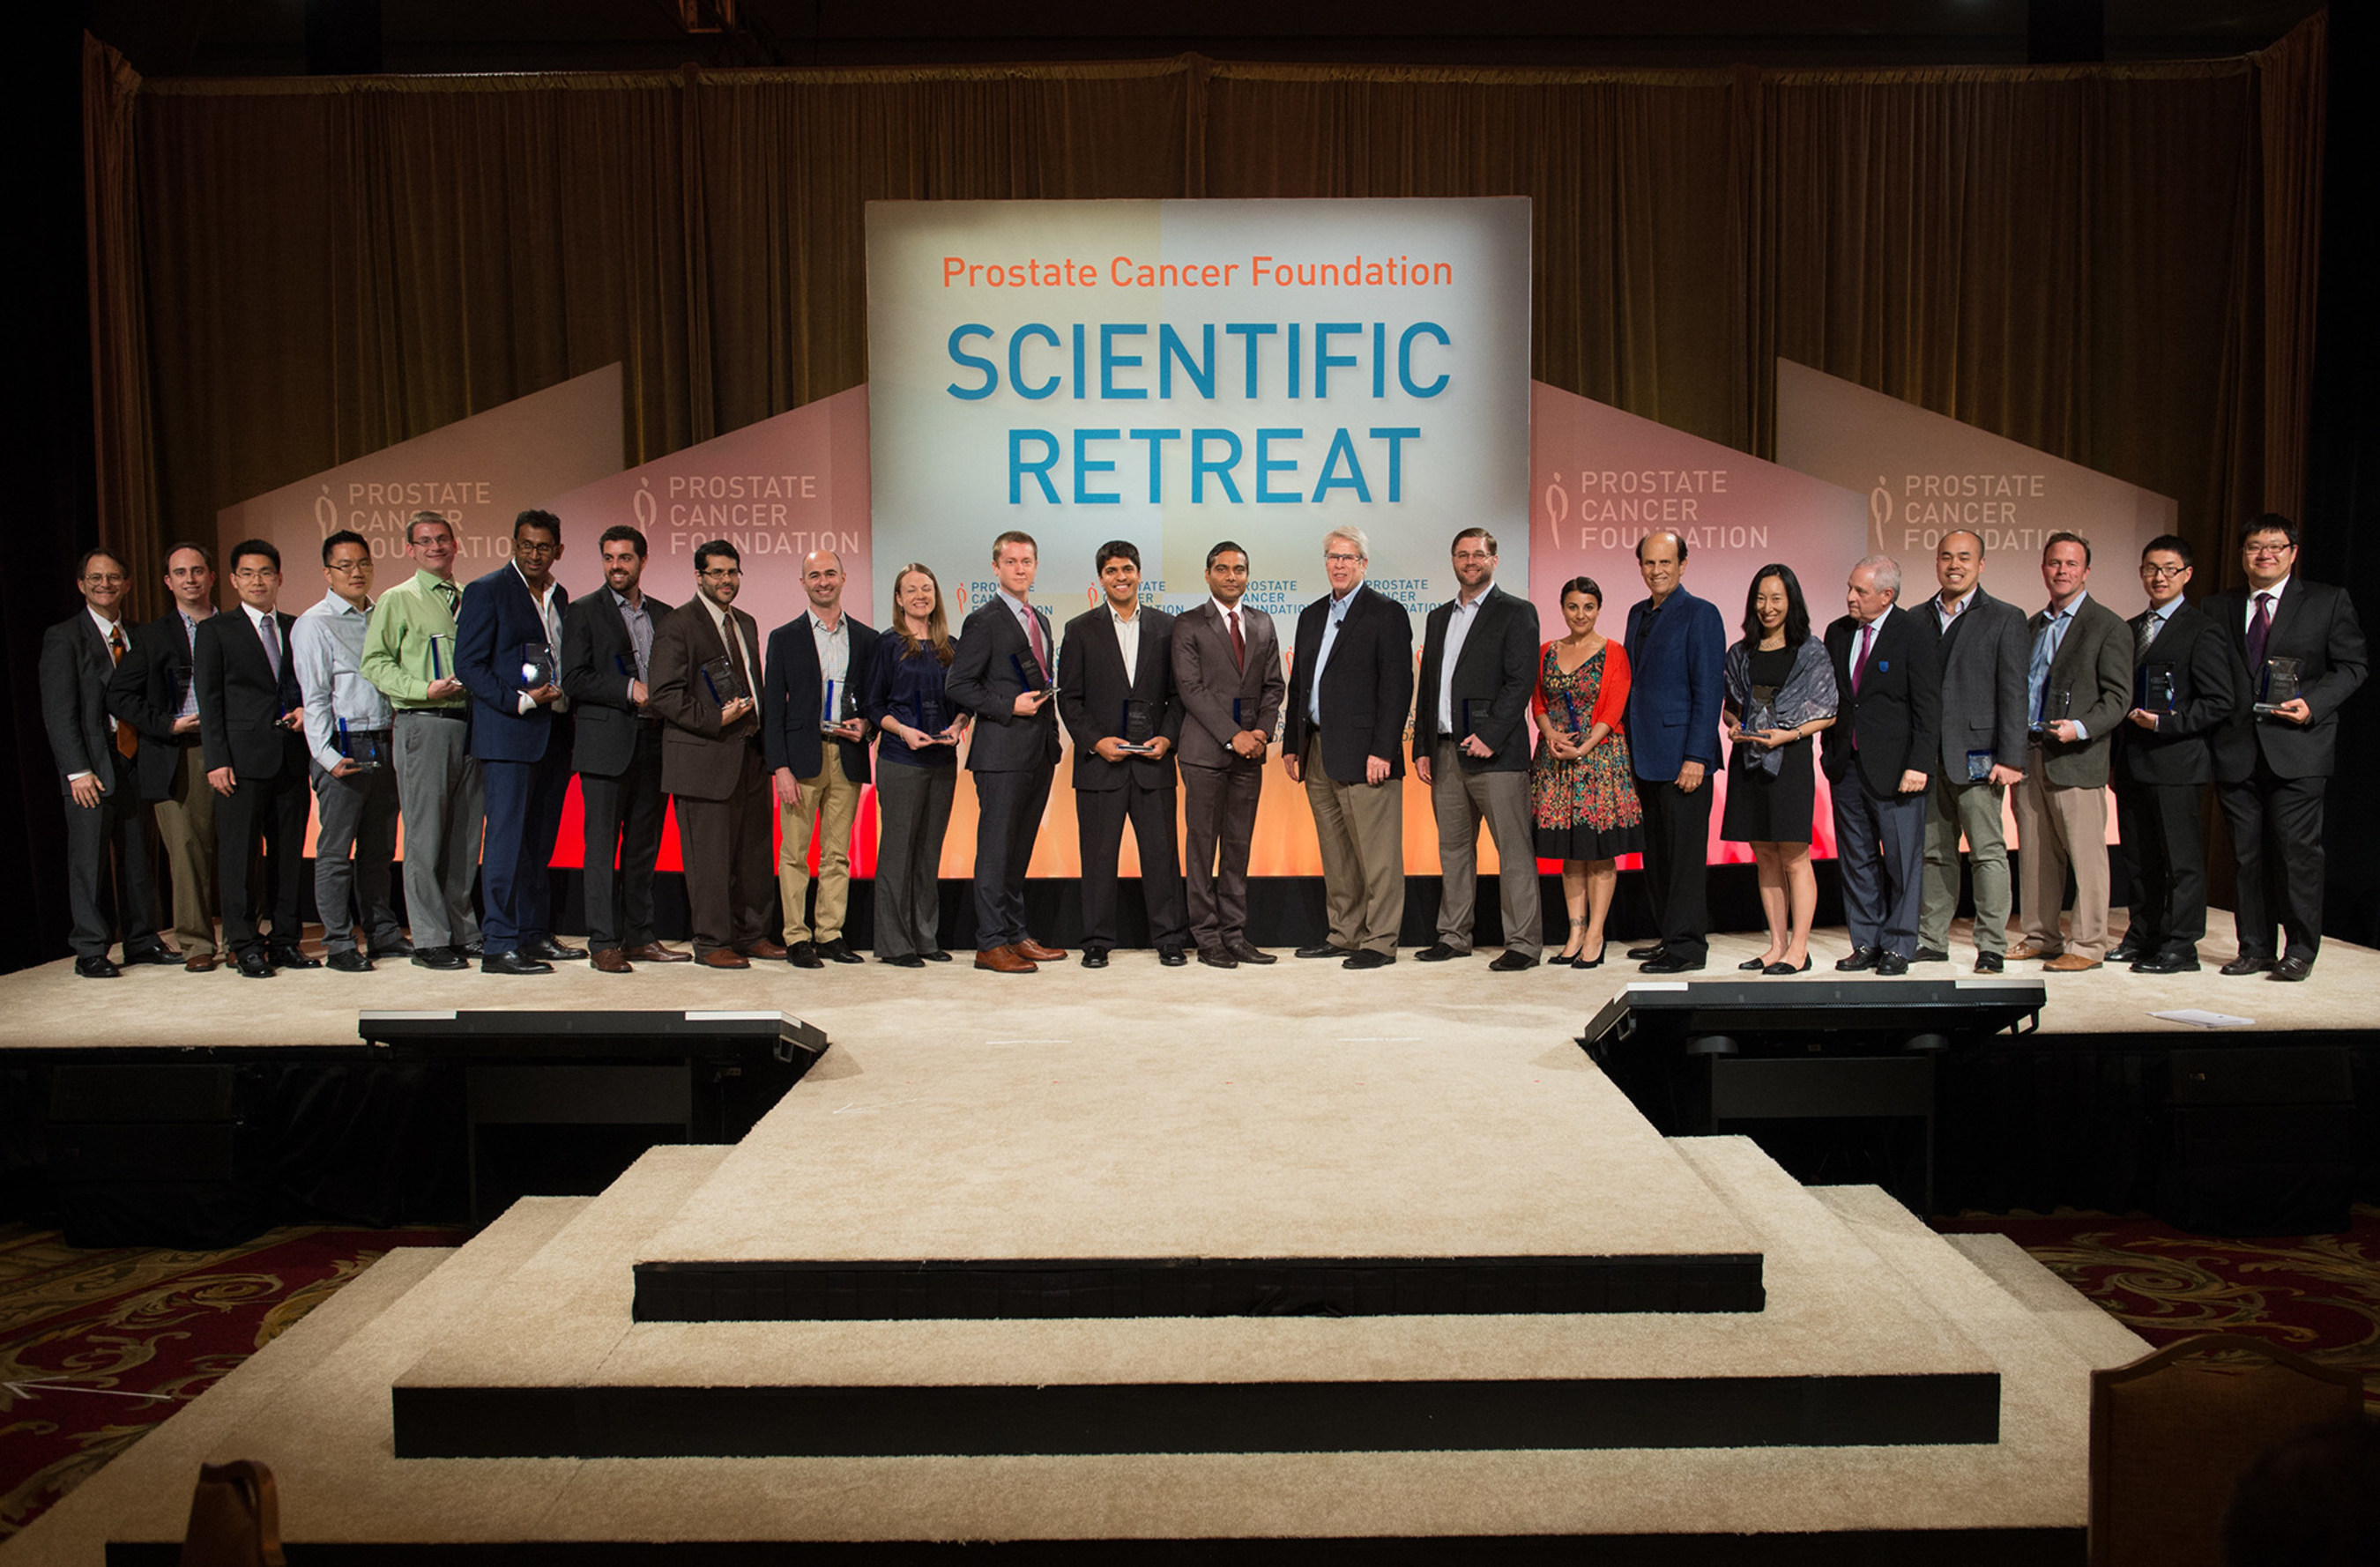 Prostate Cancer Foundation awards 19 new Young Investigators at PCF's 22nd Annual Scientific Retreat to accelerate prostate cancer research breakthroughs. For more information about their research initiatives, visit: http://bit.ly/1W6wyrG